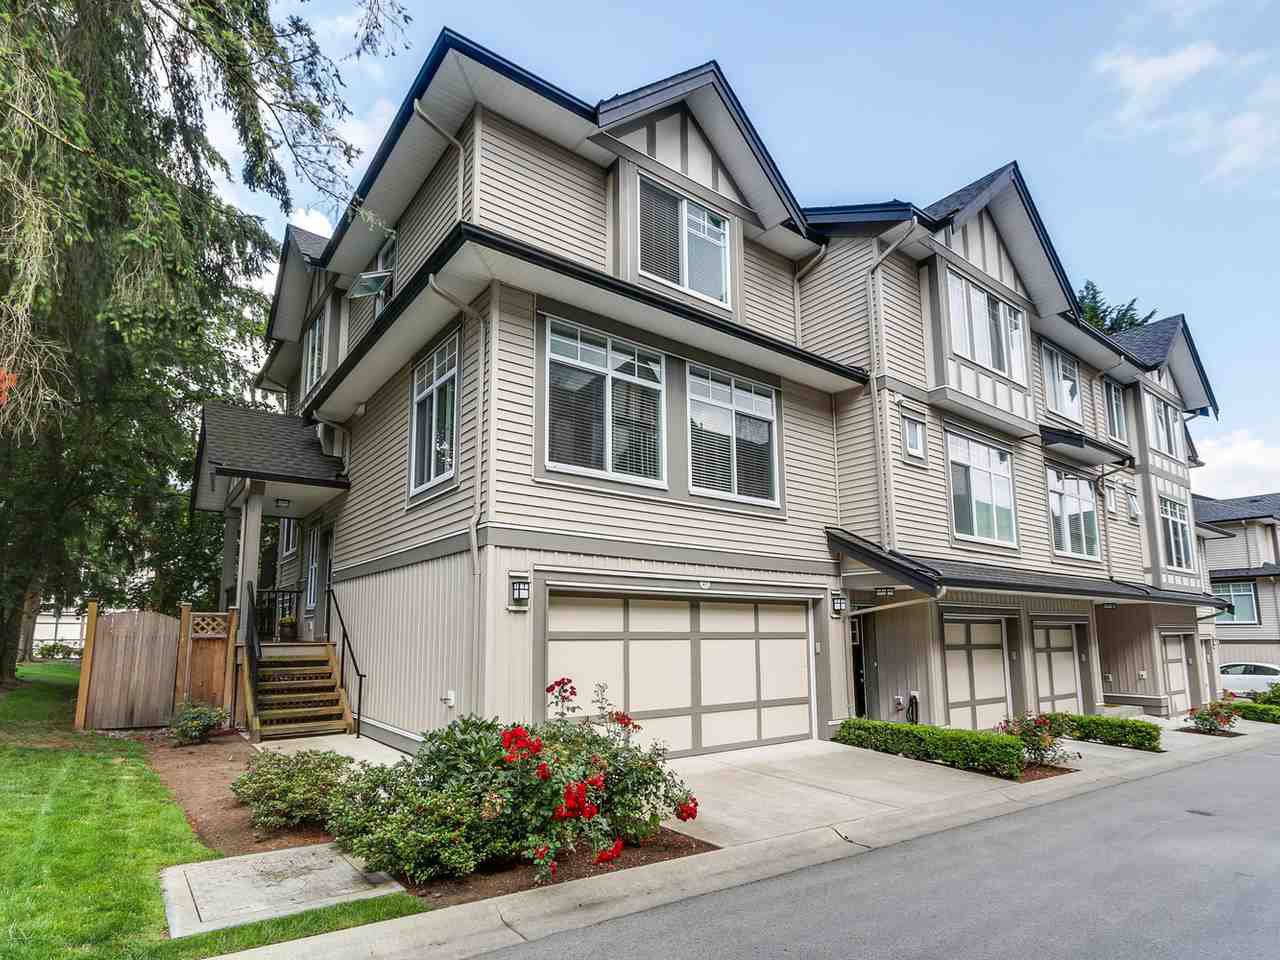 """Main Photo: 27 7090 180 Street in Surrey: Cloverdale BC Townhouse for sale in """"The Boardwalk"""" (Cloverdale)  : MLS®# R2092709"""